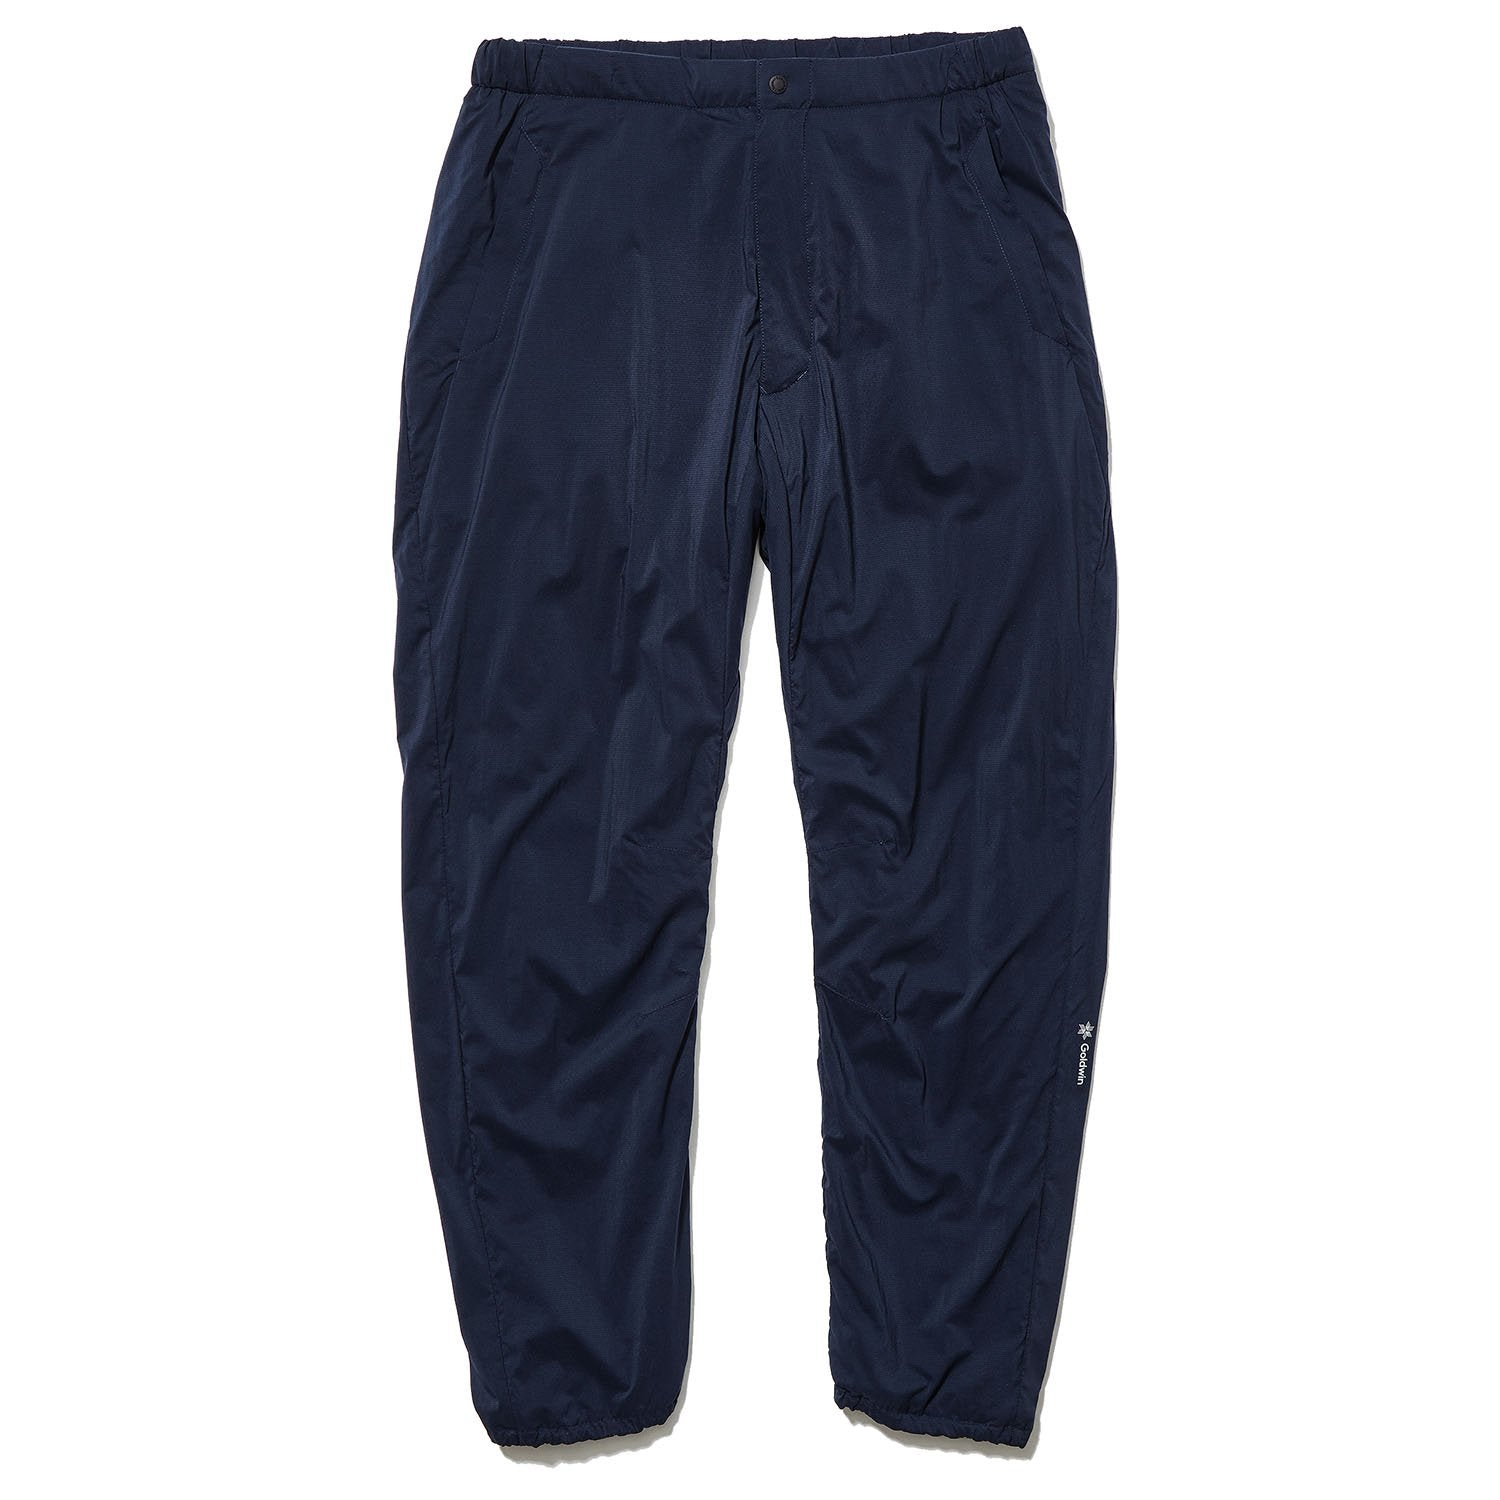 Light Warmer Pants